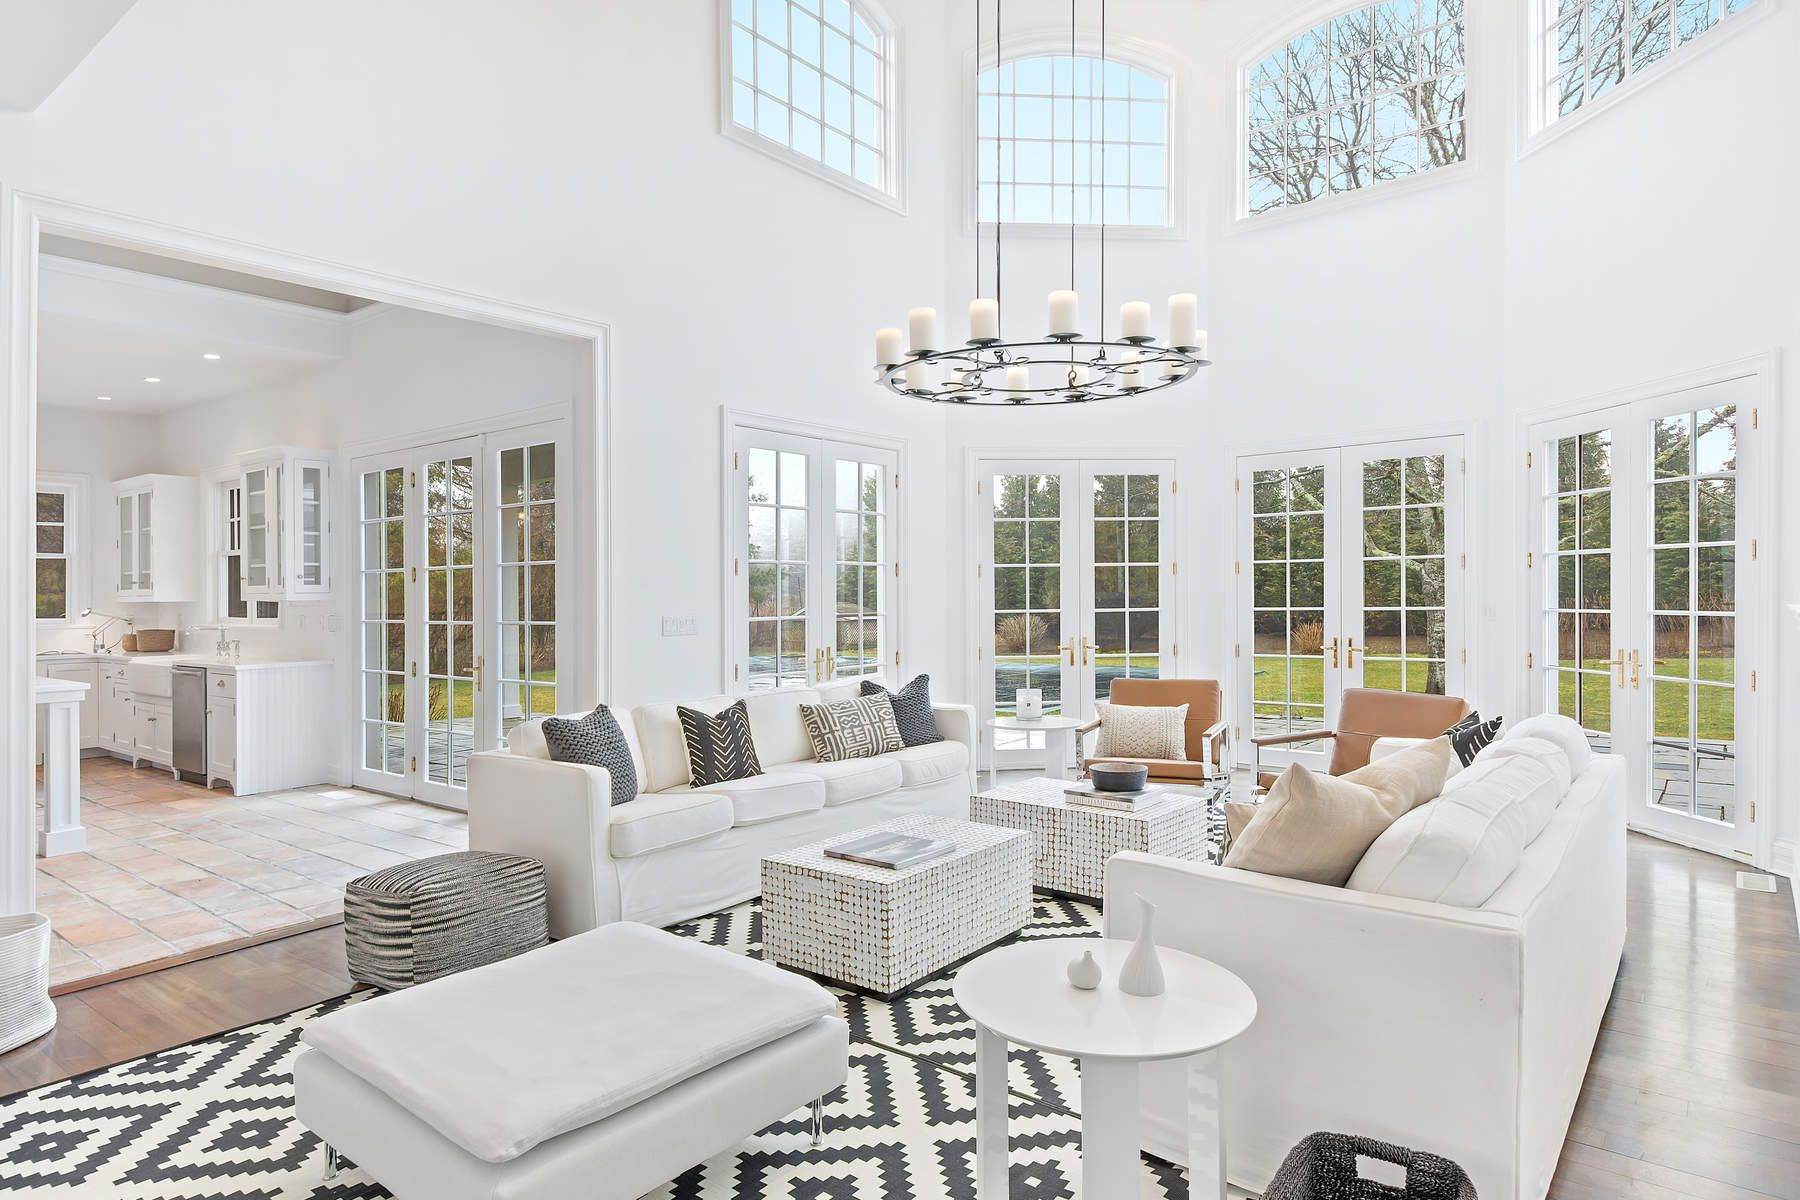 Single Family Home for Sale at Stunning Value South Of The Highway 5 Judson Lane, East Hampton, New York, 11937 United States